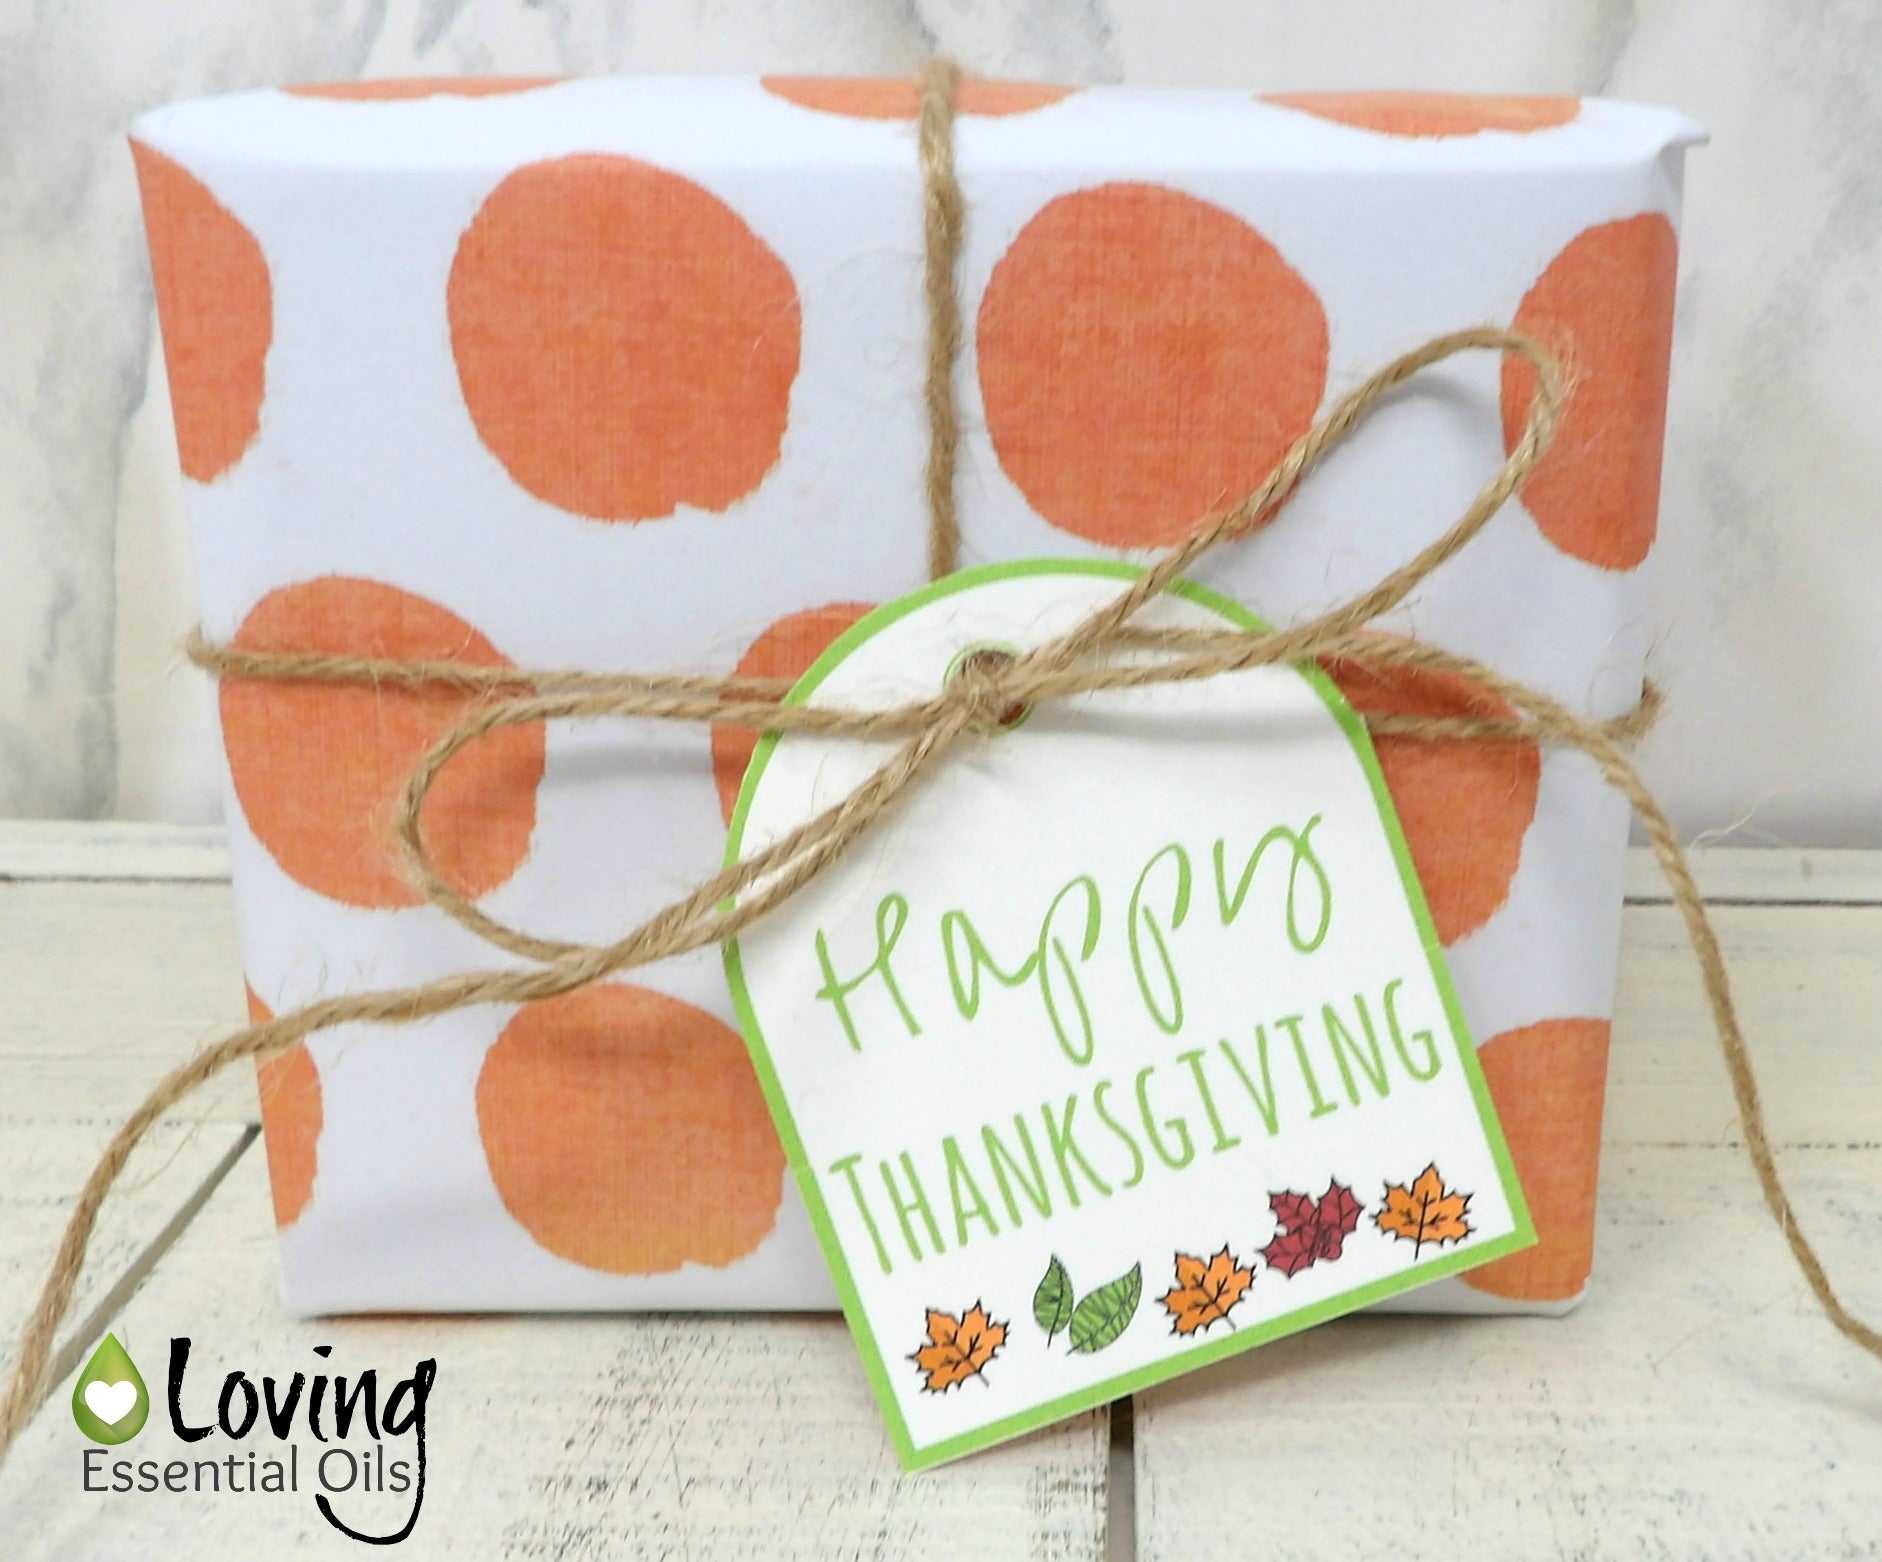 photograph regarding Free Printable Thanksgiving Tags named Free of charge Printable Thanksgiving Present Tags Loving Important Oils